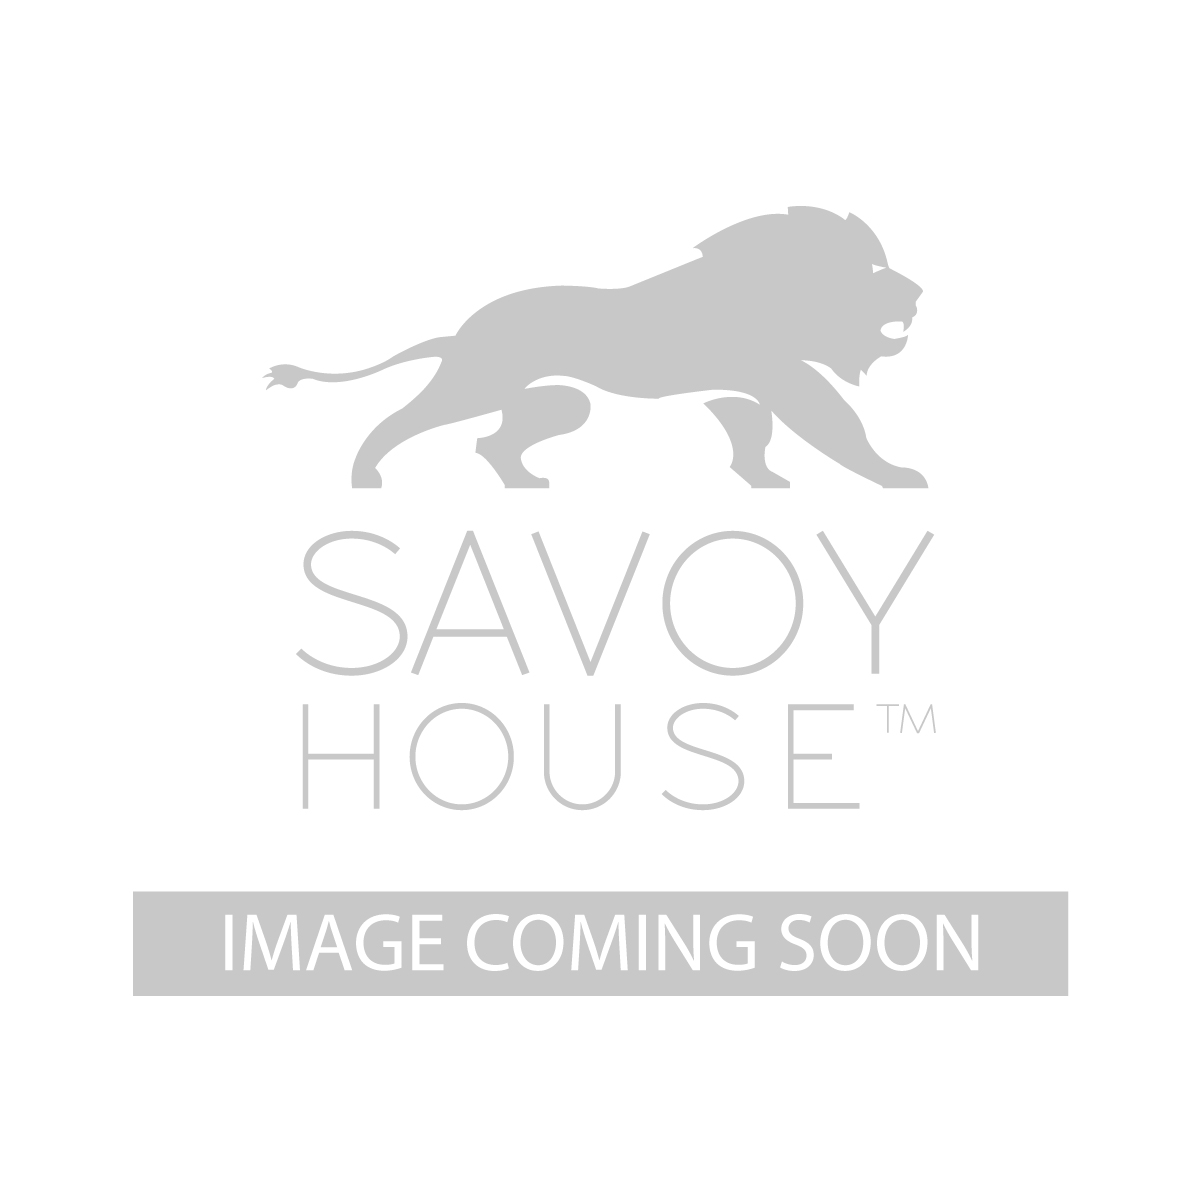 1 4001 8 13 oleander 8 light outdoor chandelier by savoy house arubaitofo Choice Image